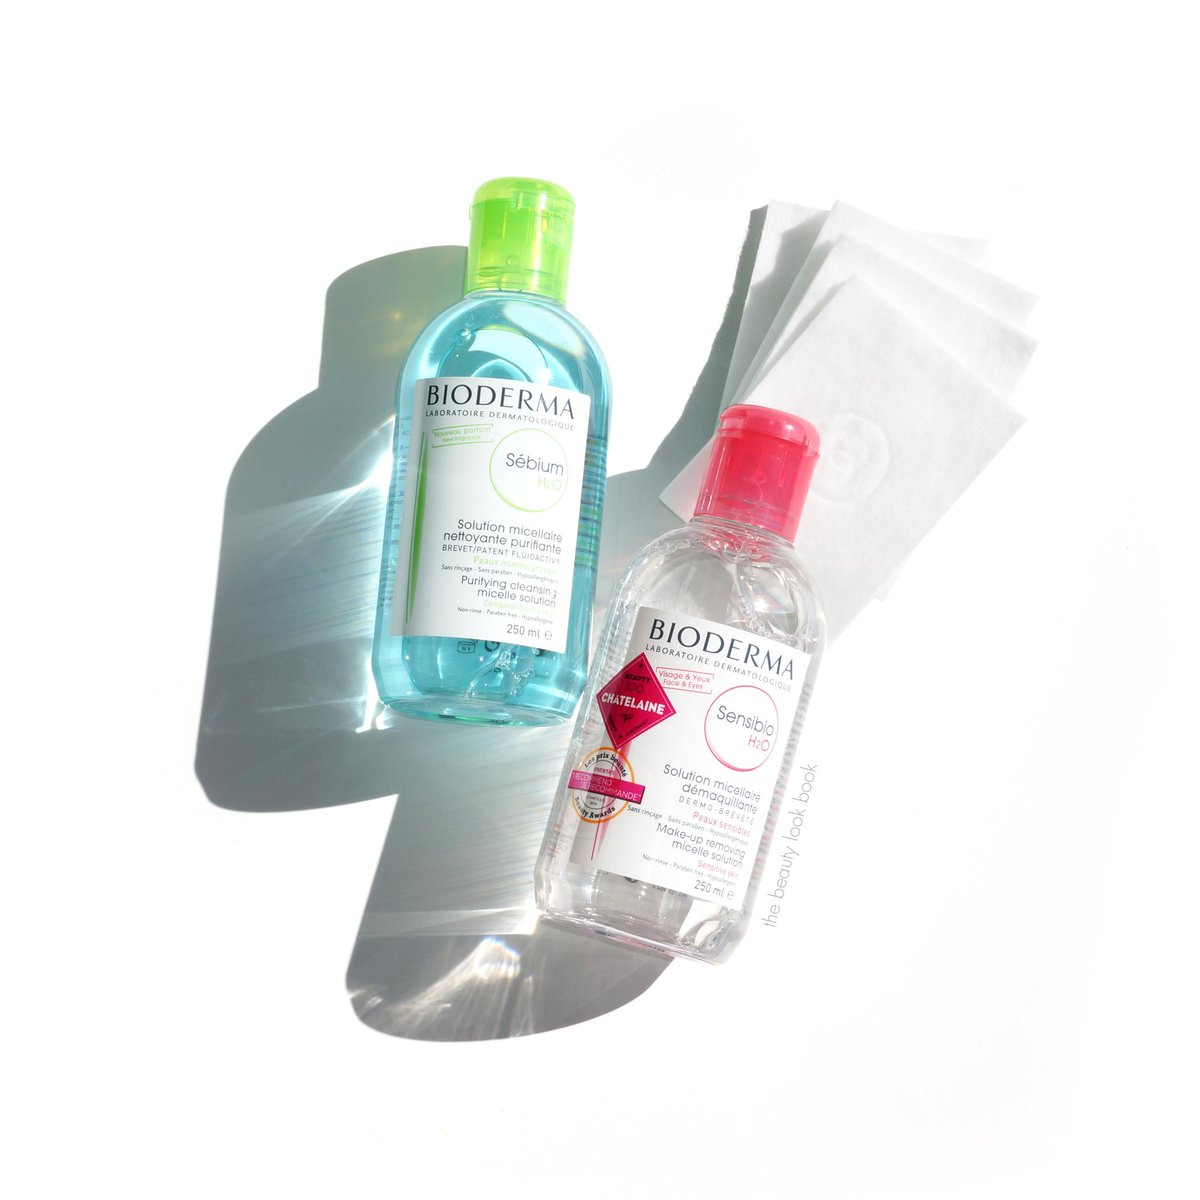 Latest love for Bioderma makeup removers from @beautylish http://t.co/b9Be8bpT90 http://t.co/JZQs5yMVjq